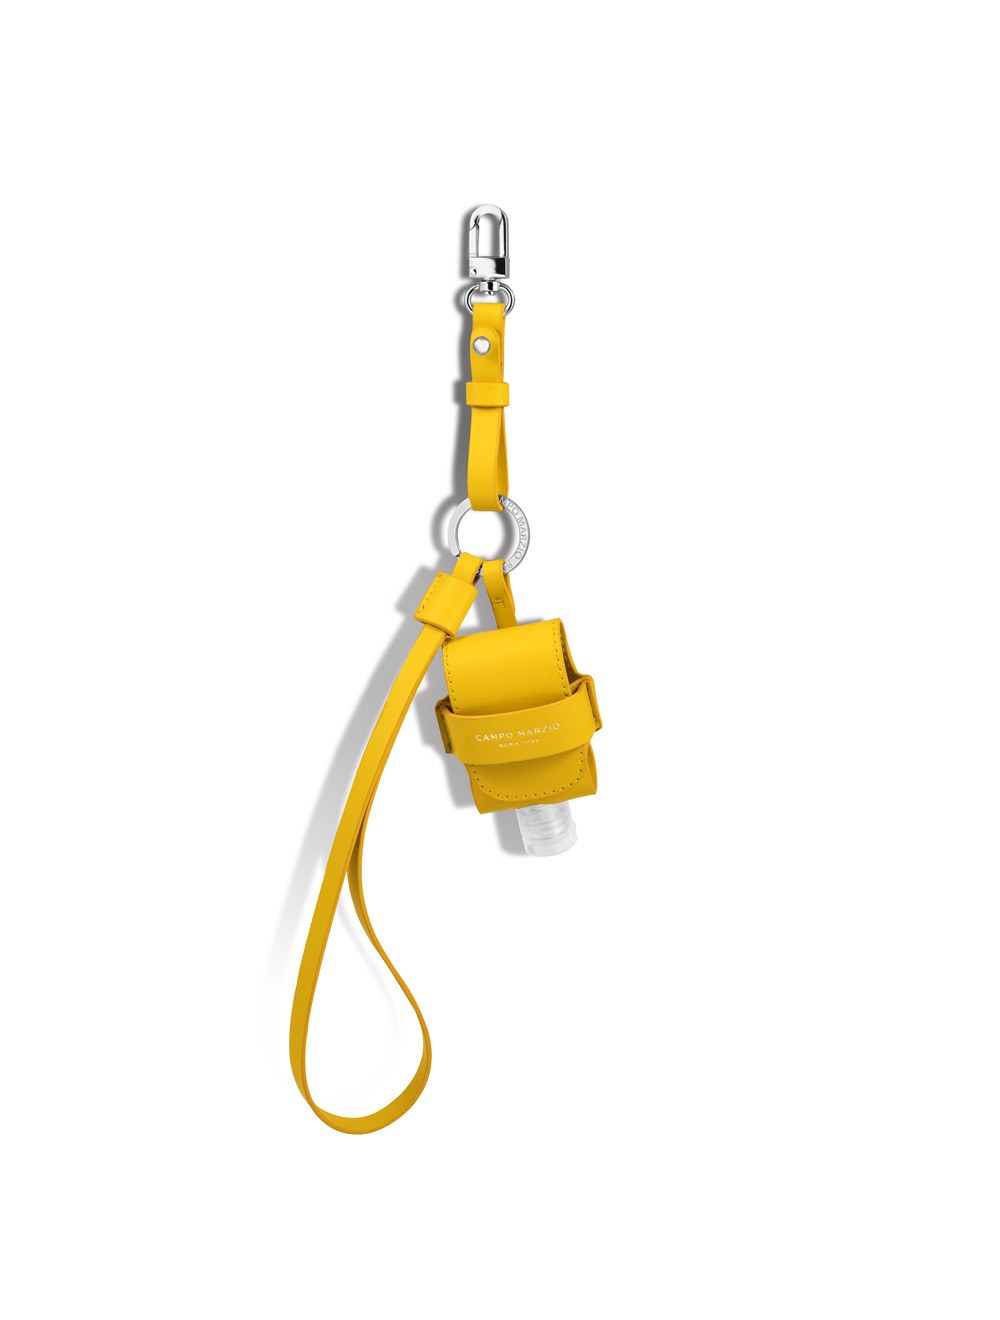 Keychain with Mini Pouch Dispenser - Canary Yellow